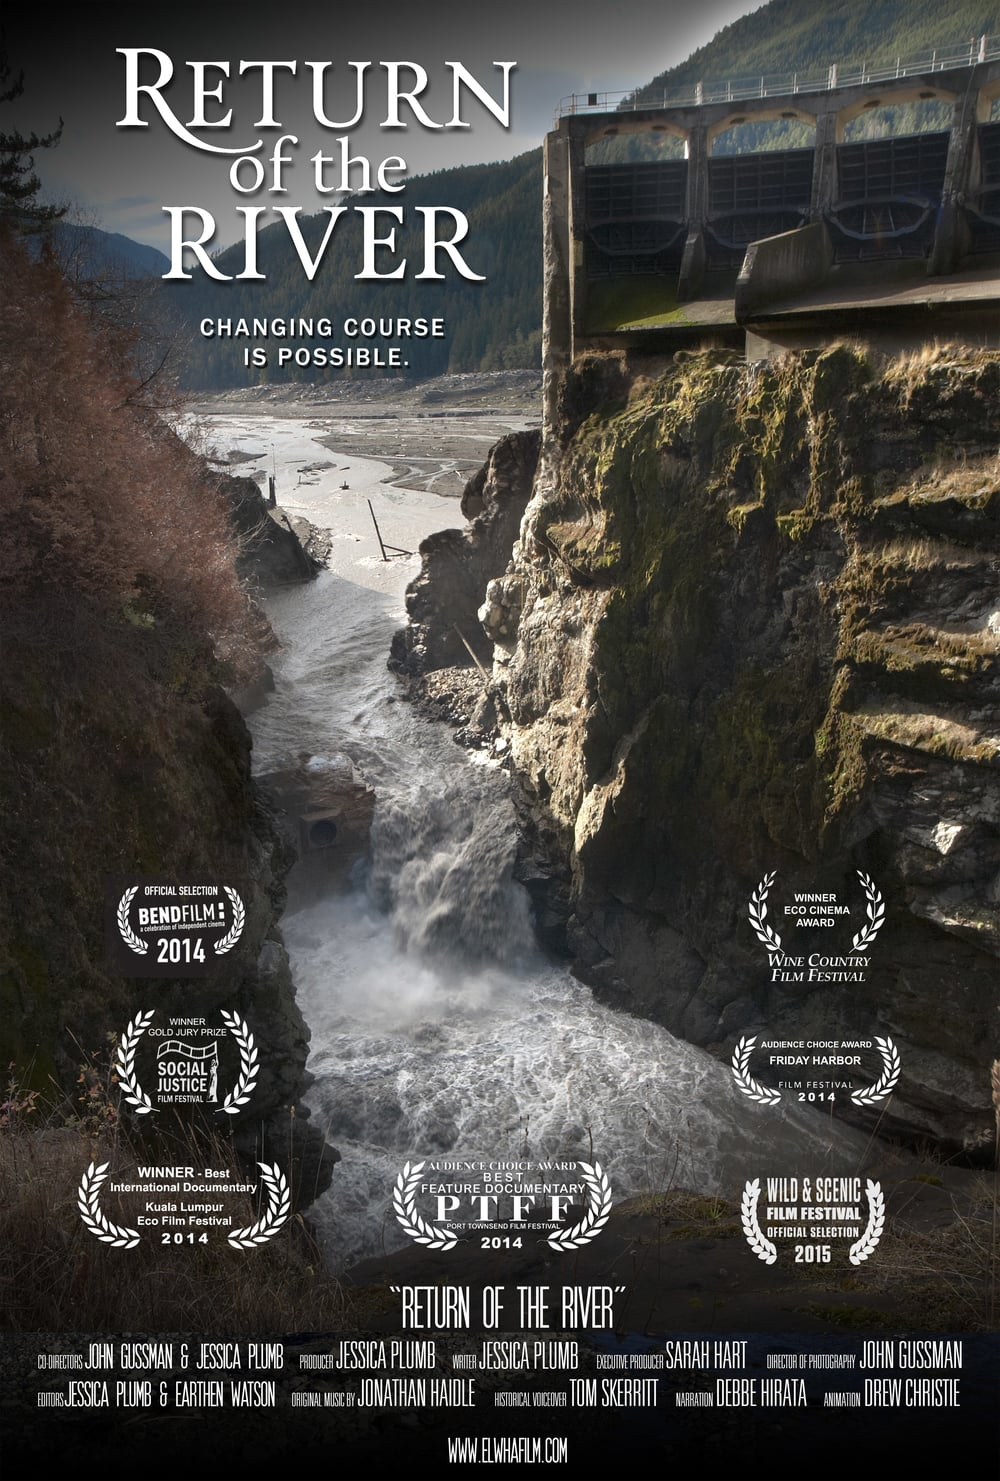 Return of the River - Documentary Film